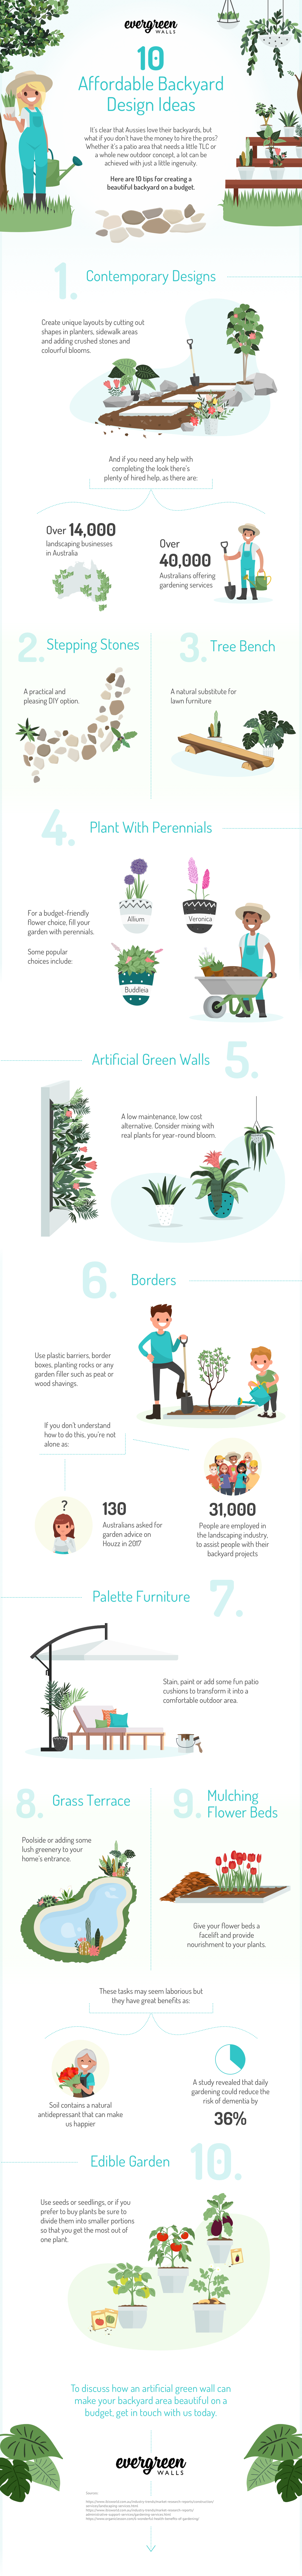 10 Affordable Backyard Design Ideas Infographic